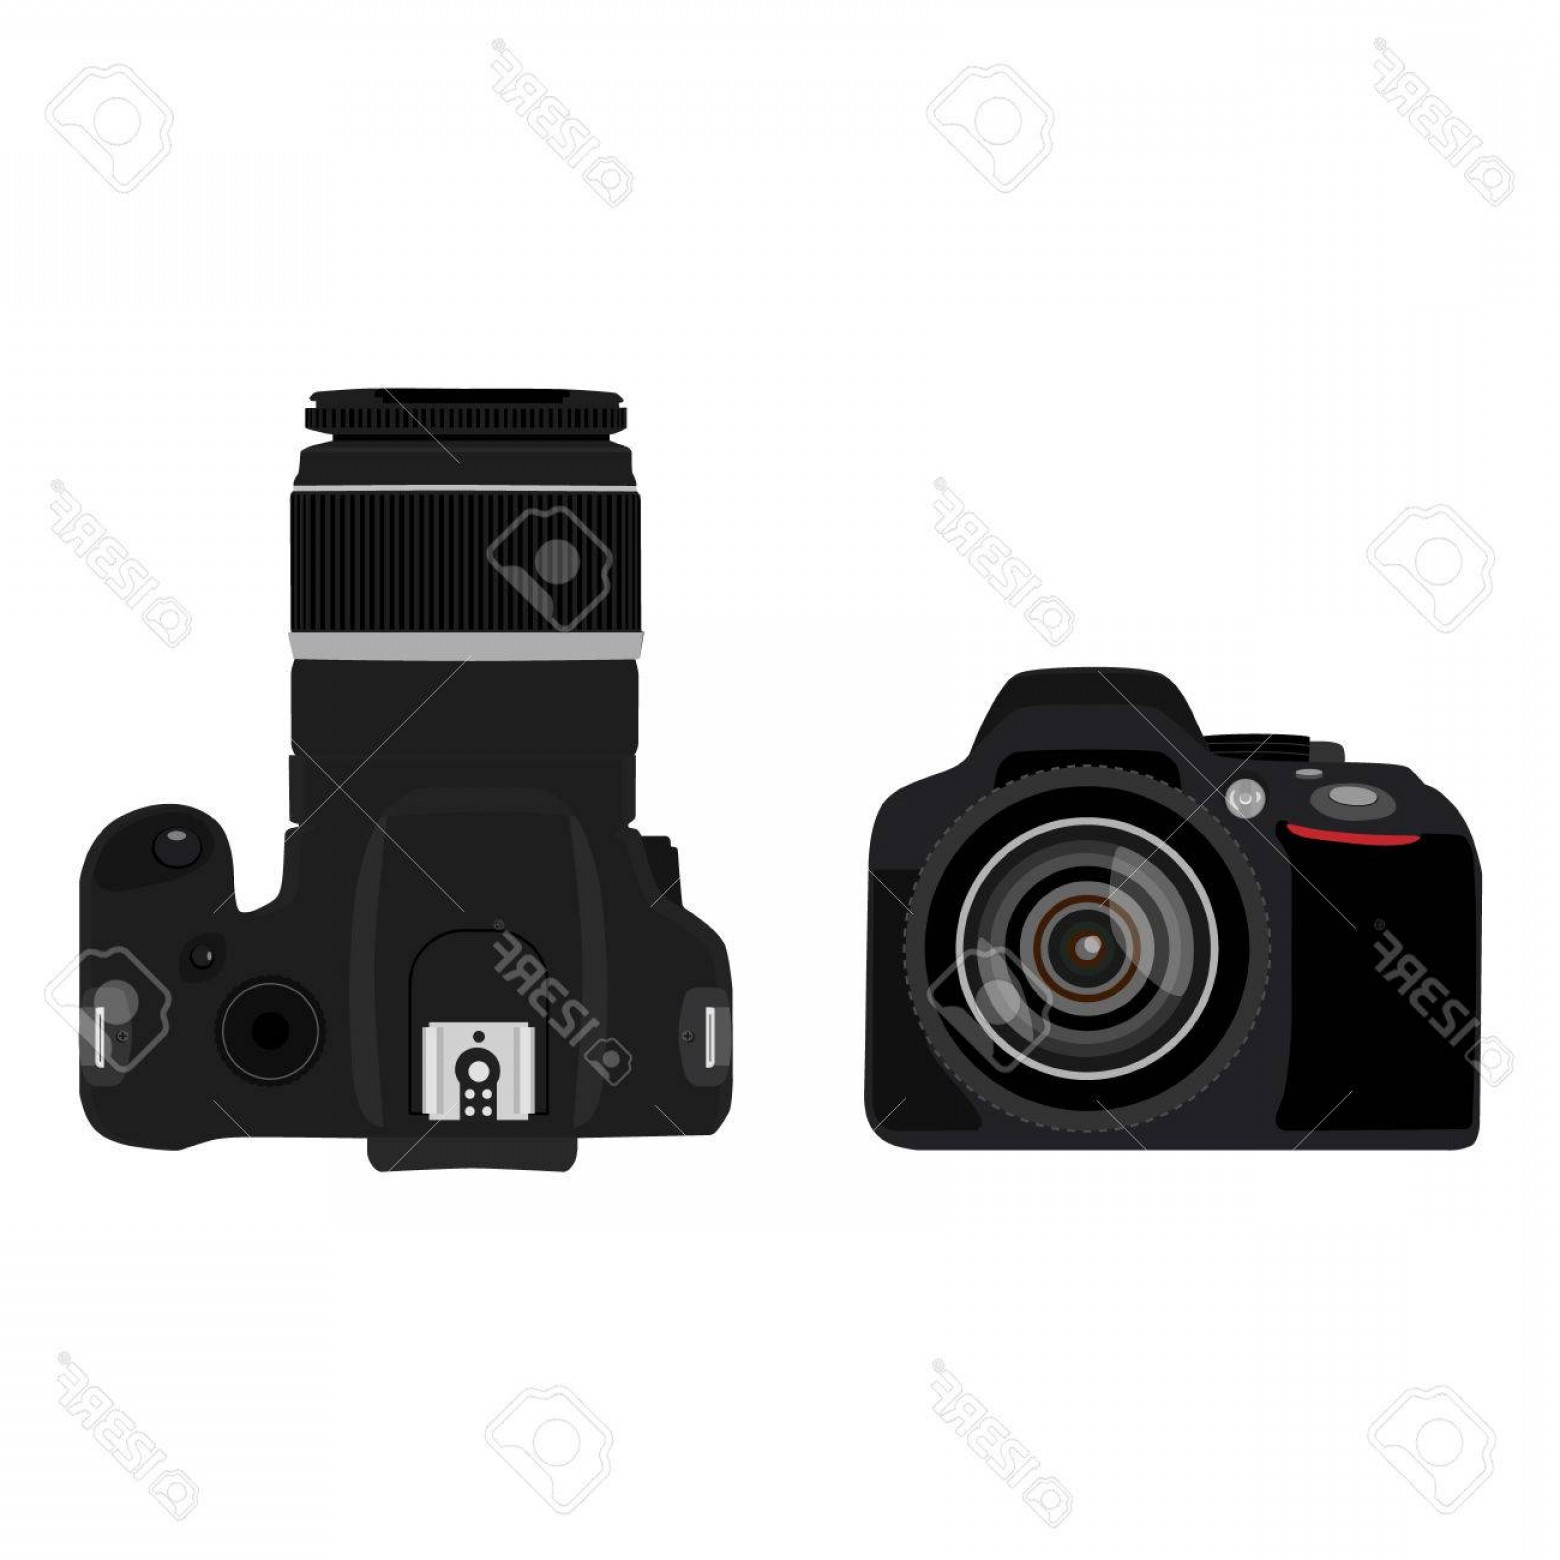 SLR Camera Vector: Photostock Vector Vector Illustration Slr Camera Top And Side View Dslr Realistic Photo Camera Icon Digital Camera